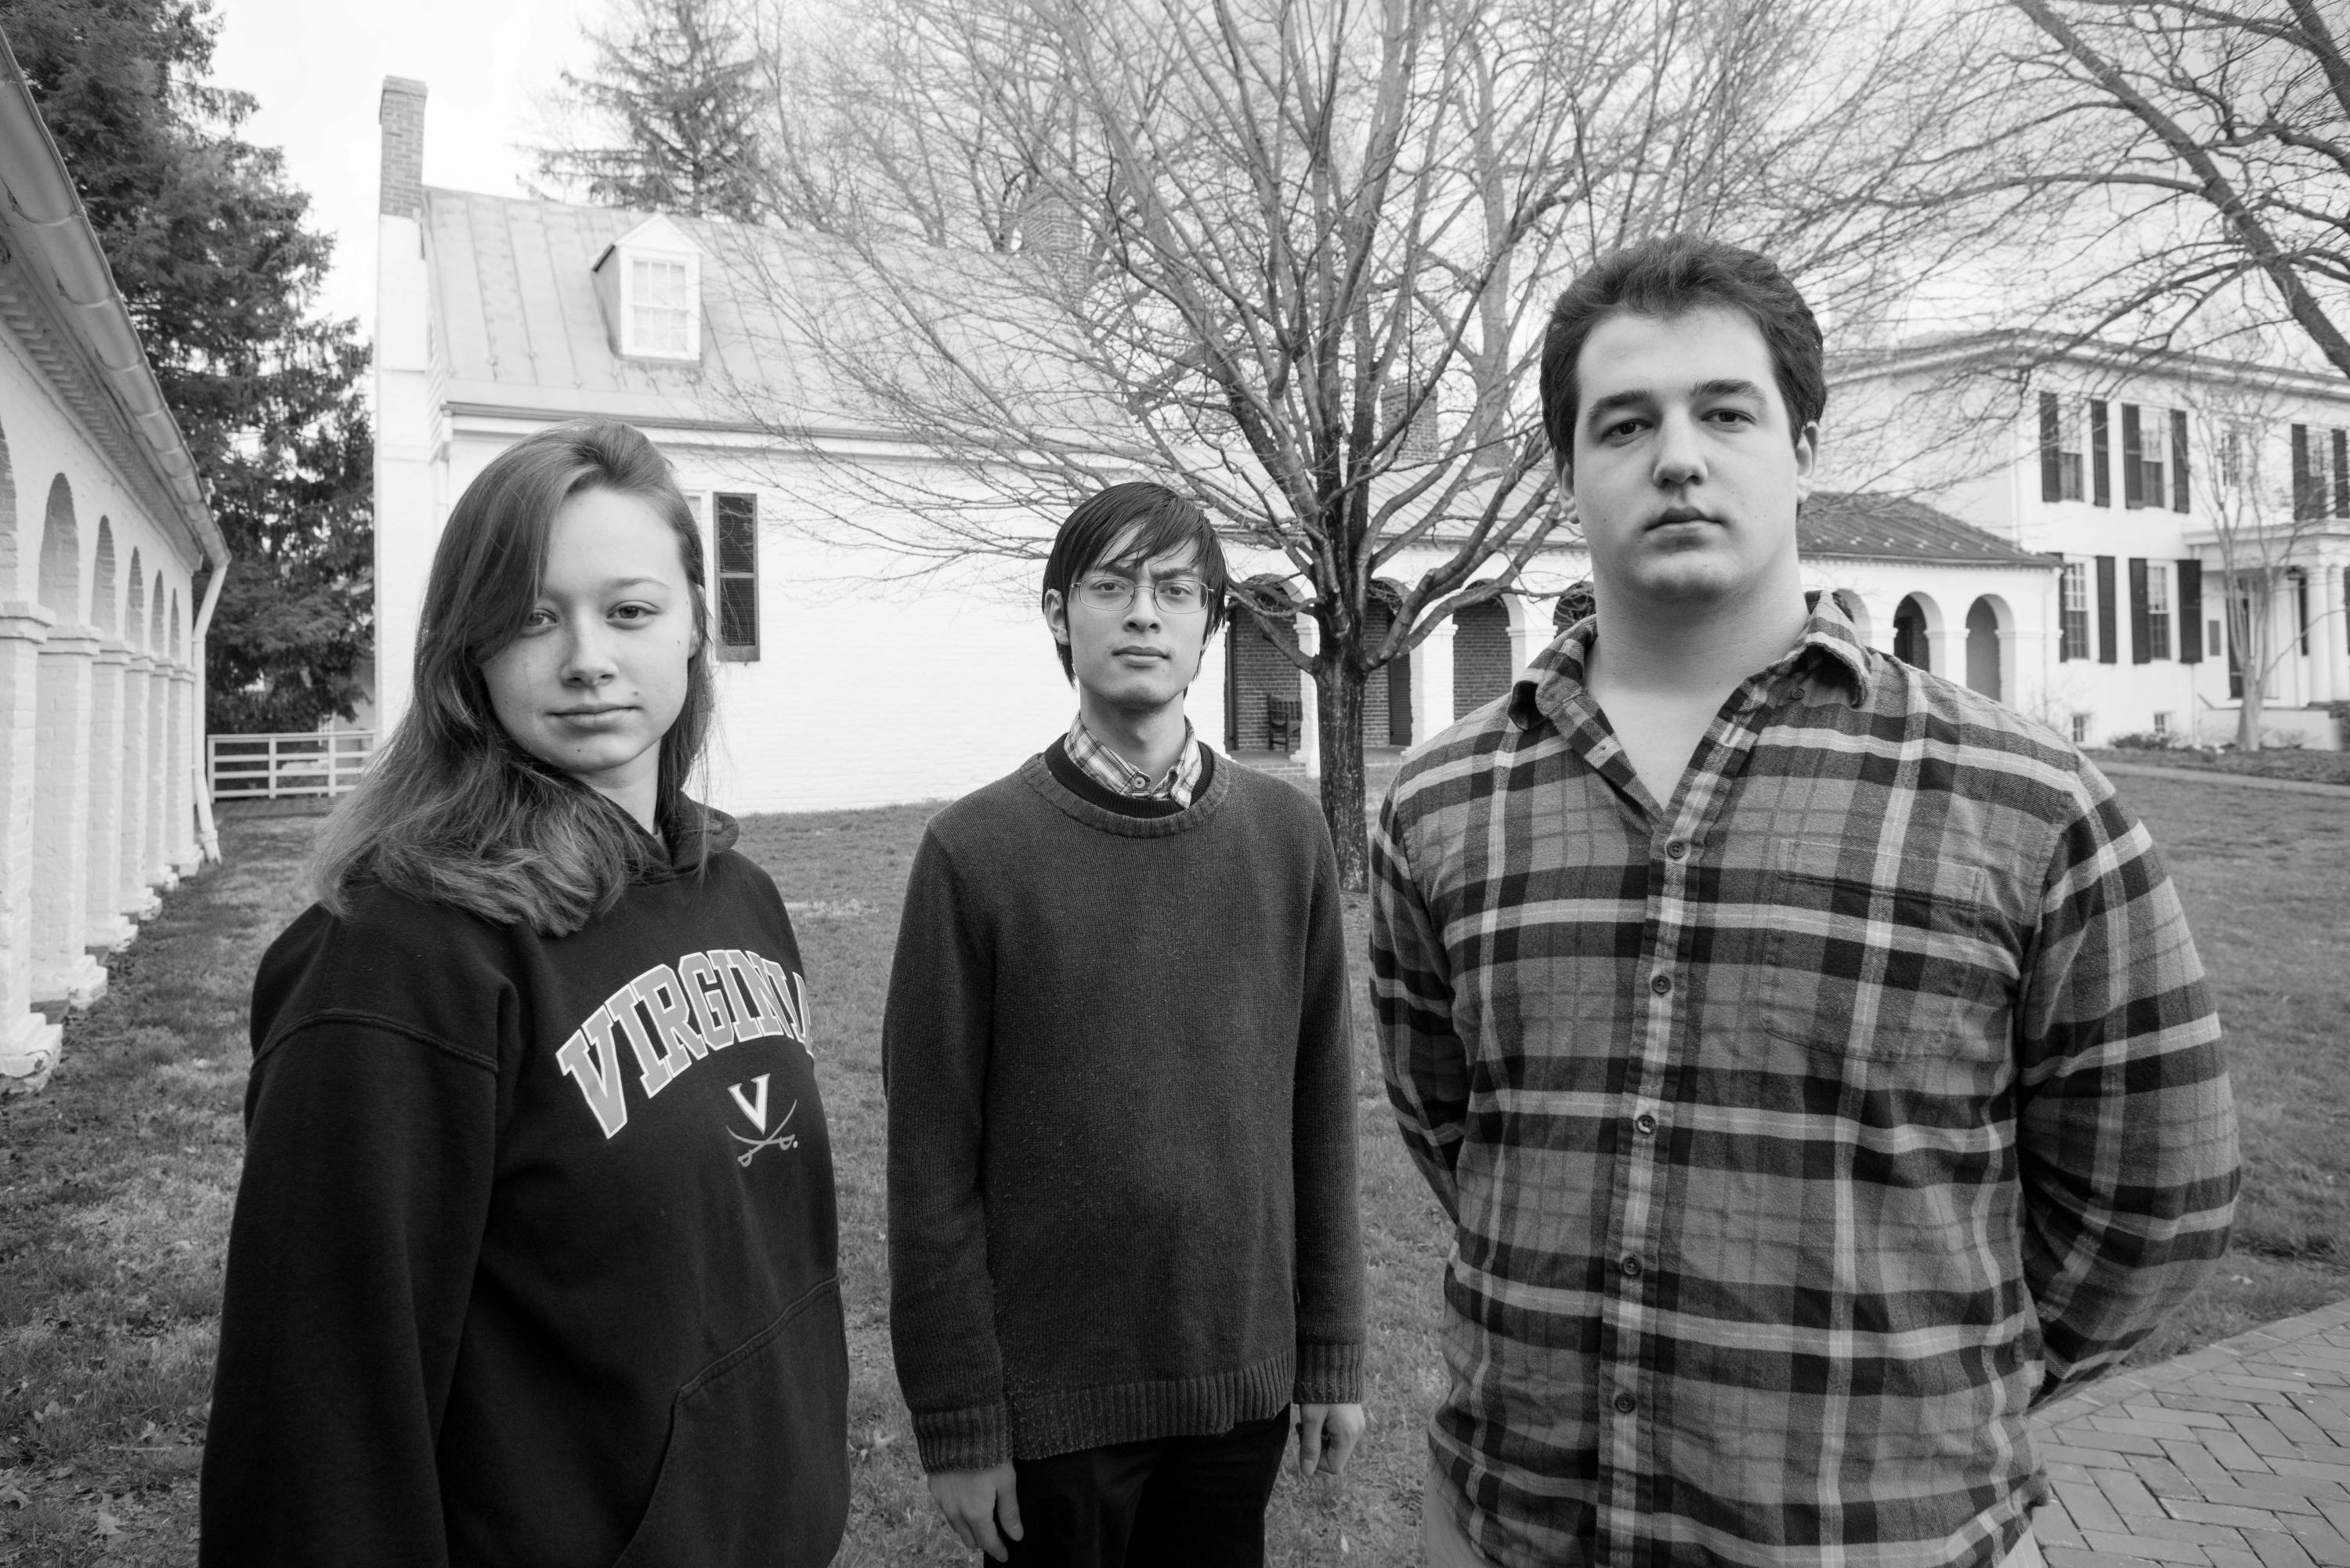 From left to right, Caitlin Muir, Daniel Van-Nostrand and Ben Camber began working on the film project this spring. Photo by Eduardo Montes-Bradley.